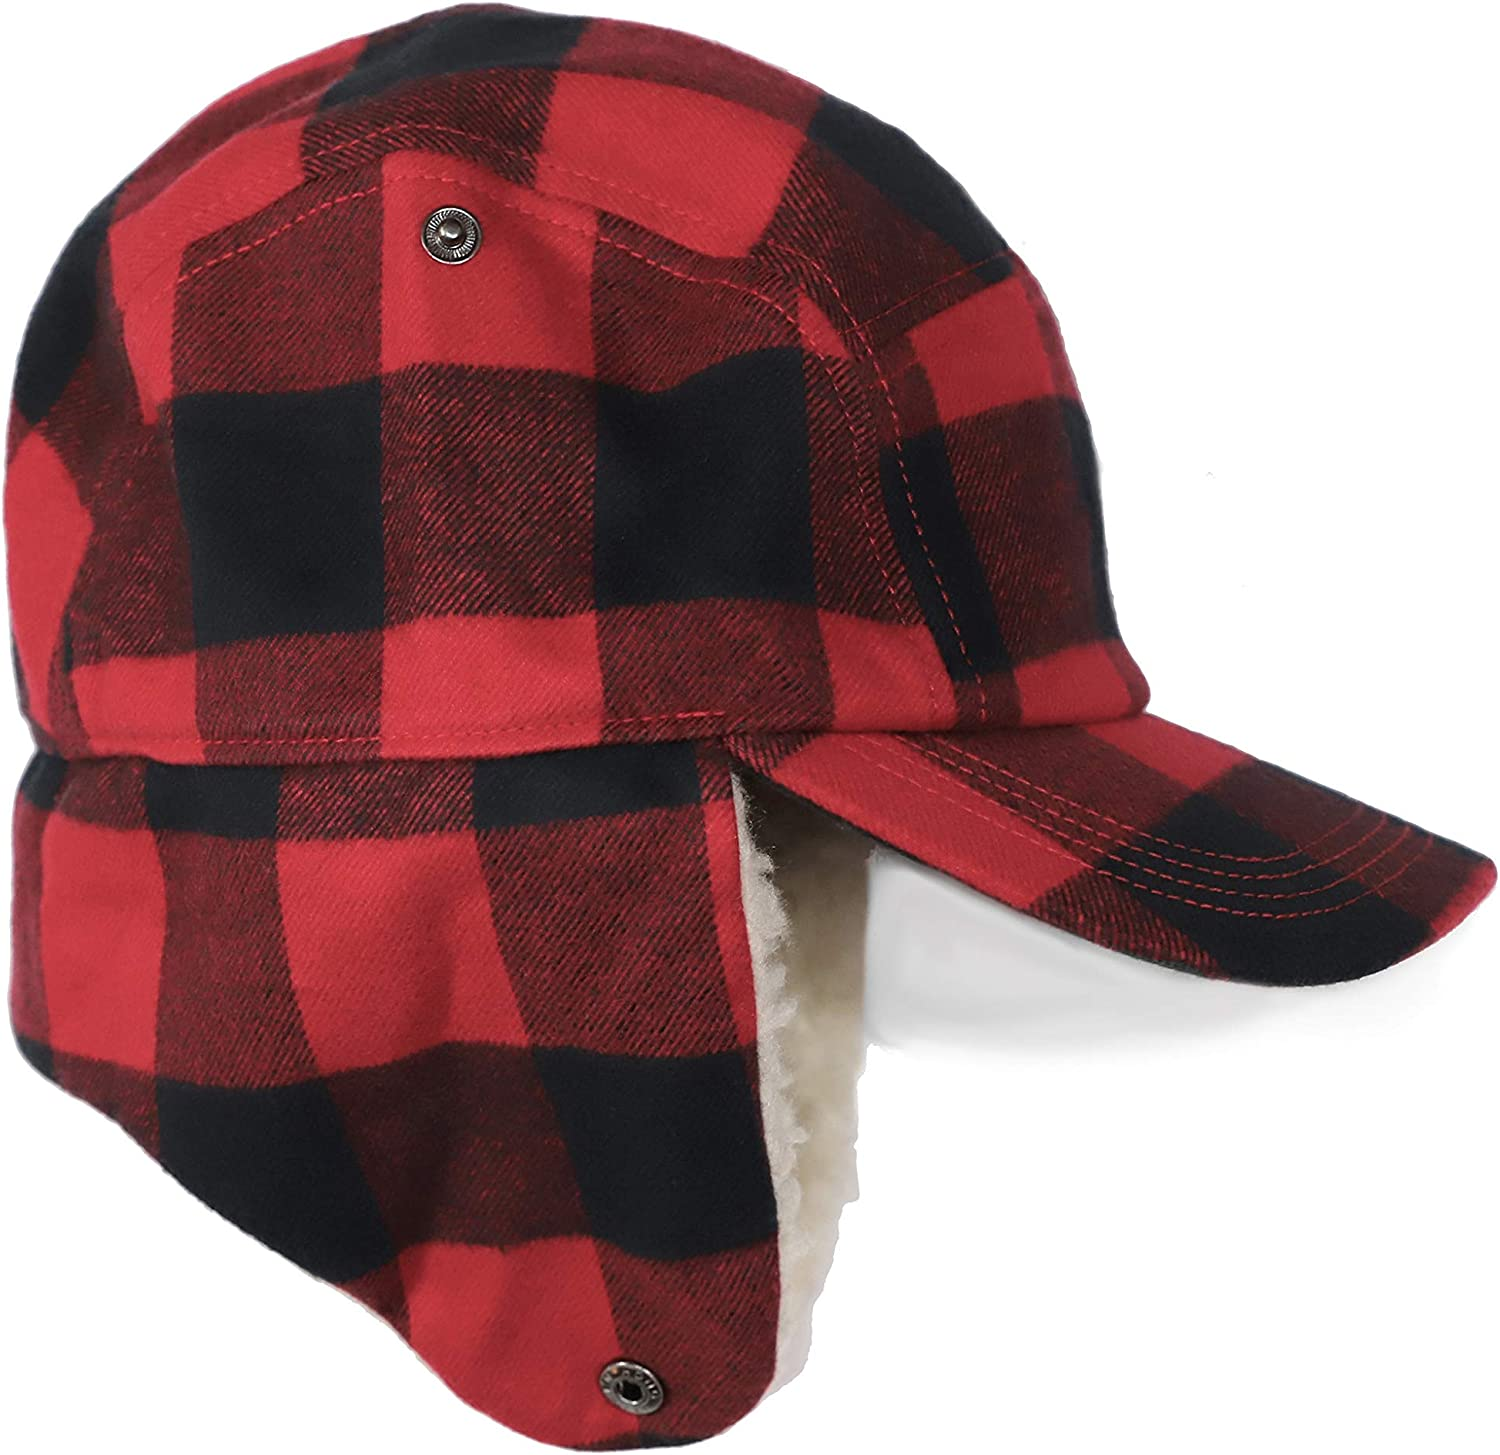 Red sherpa hat